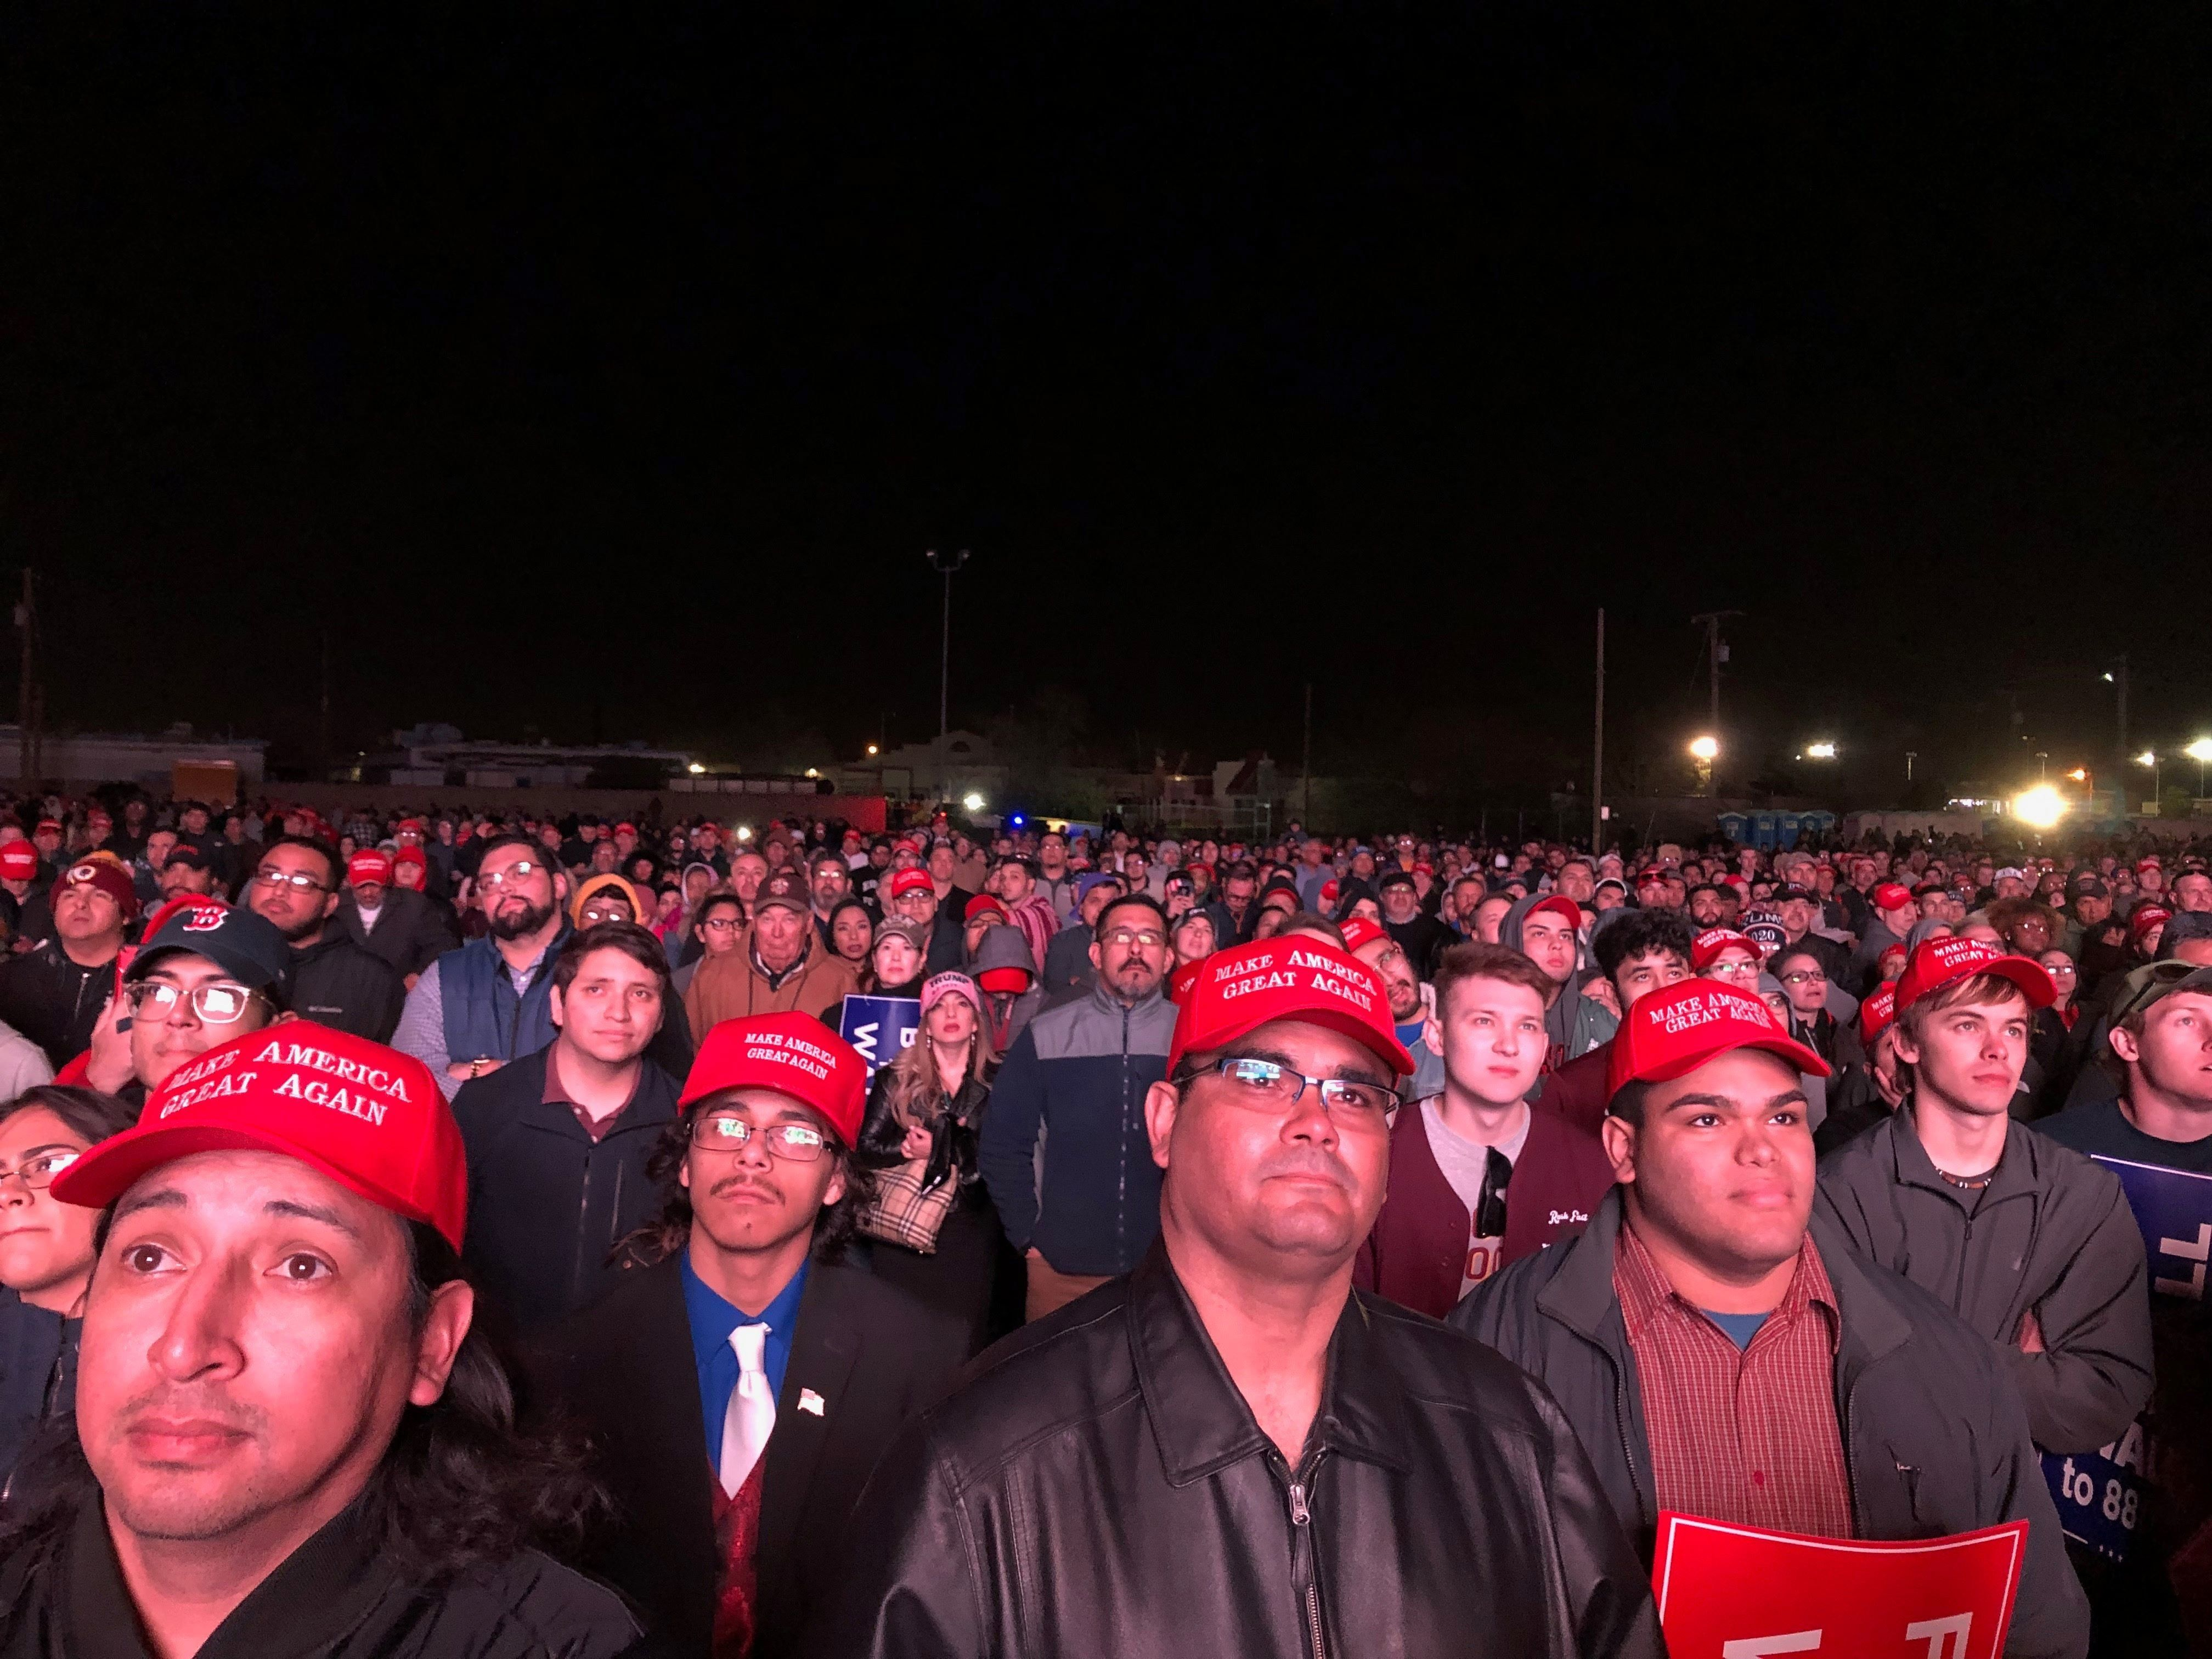 Trump supporters watch the president speak in El Paso, Texas on Feb. 11, 2019.